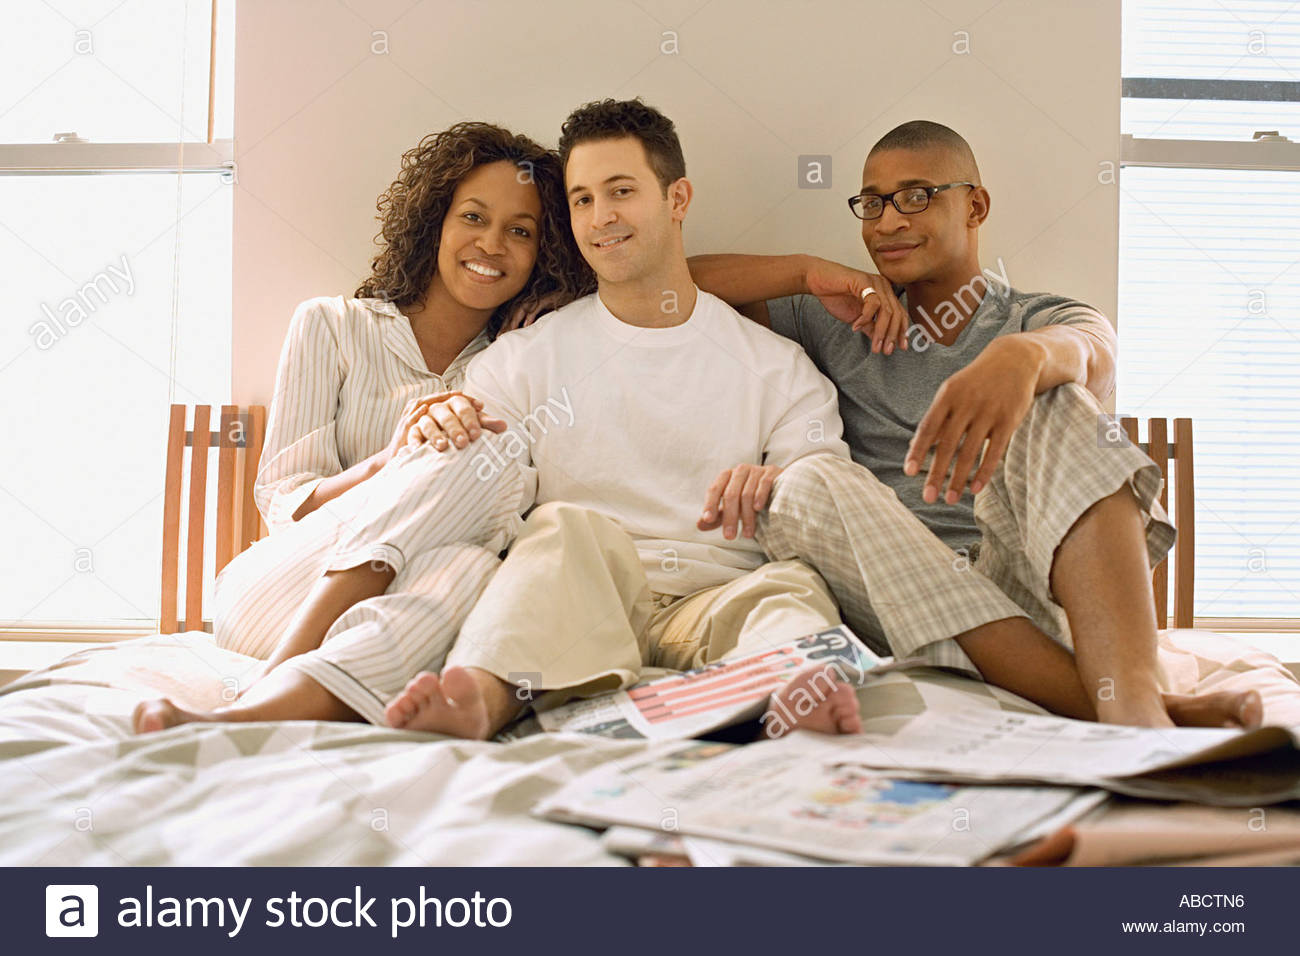 Woman and two men sitting on bed - Stock Image